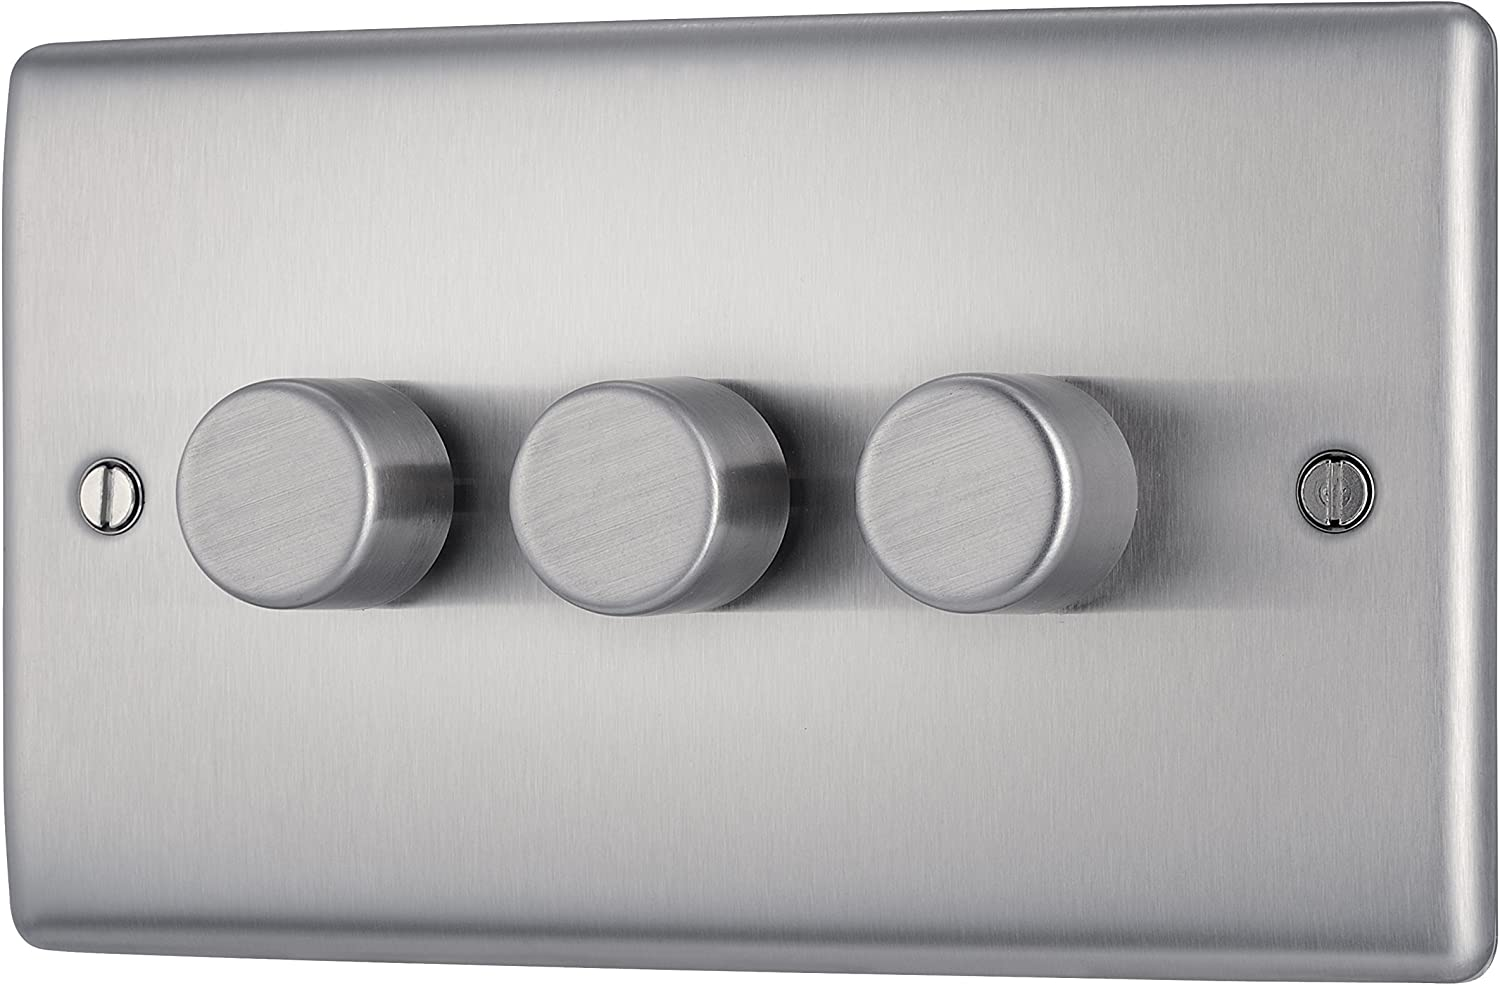 BG Nexus Brushed Stainless Steel Dimmer Switch 2way 400watts Push on//off